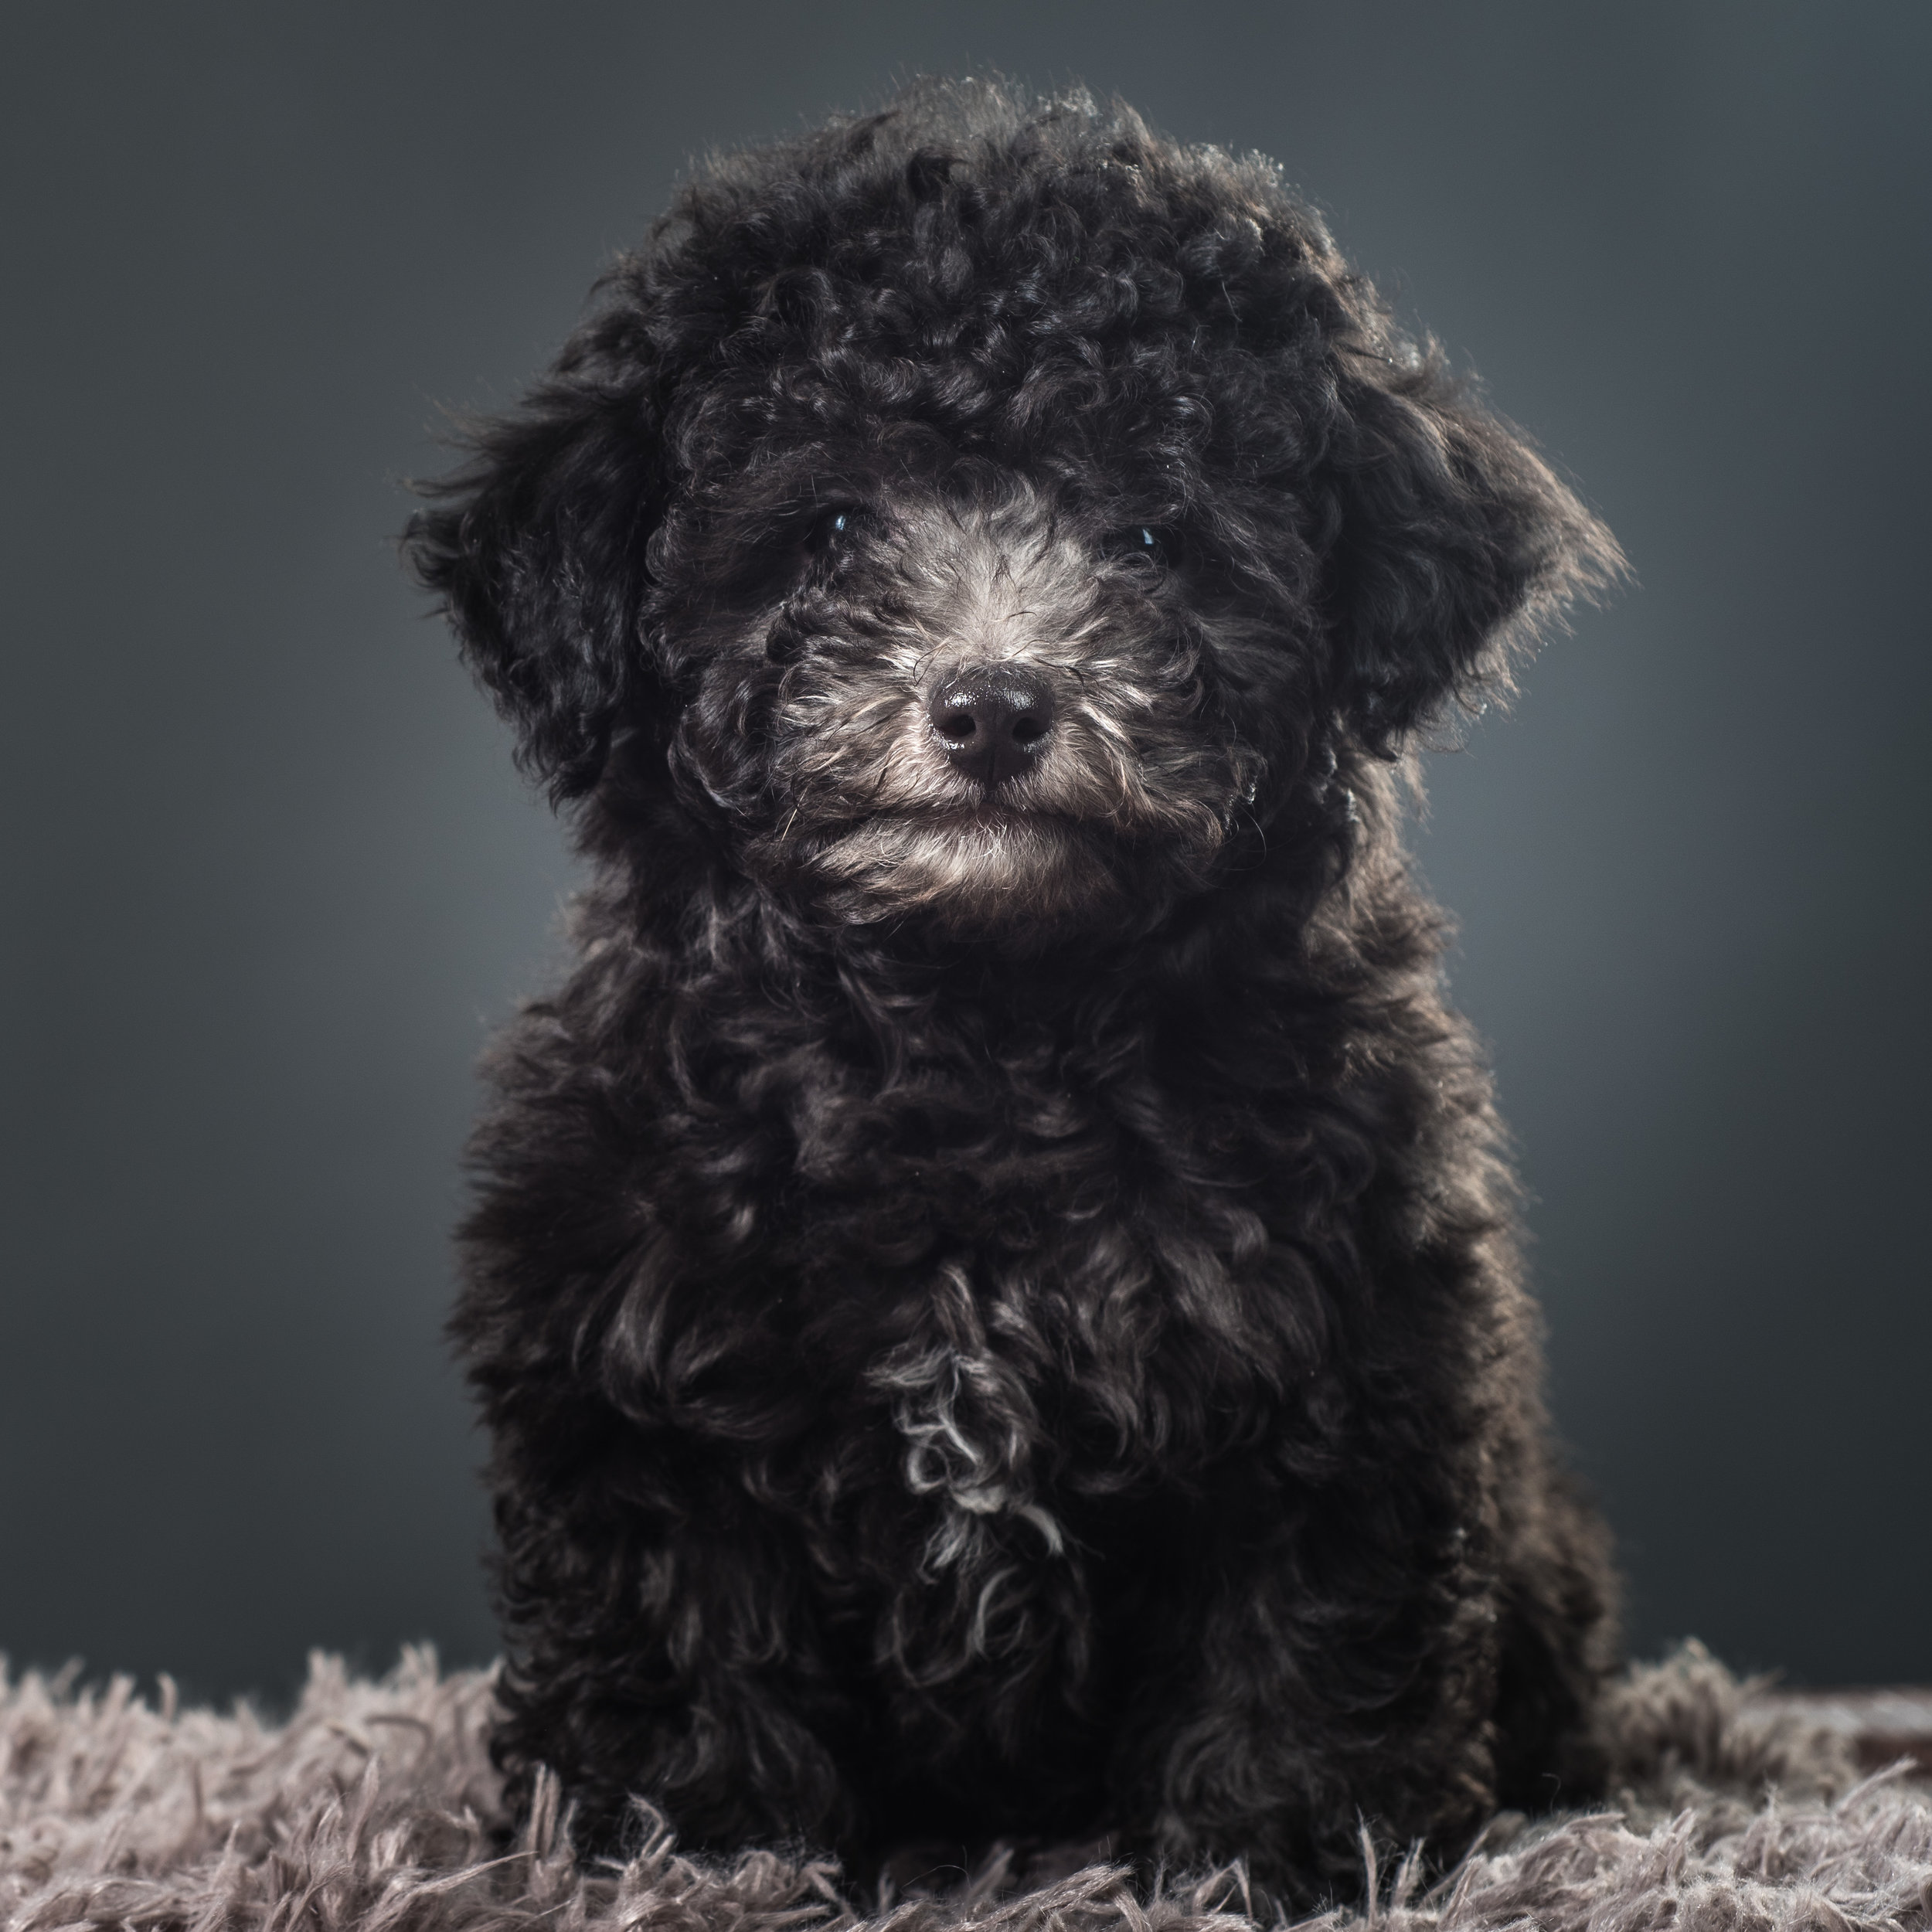 Poodle hair will grow and grow! This is a cute look on this Toy Poodle. But also requires regular brushing and bathing.